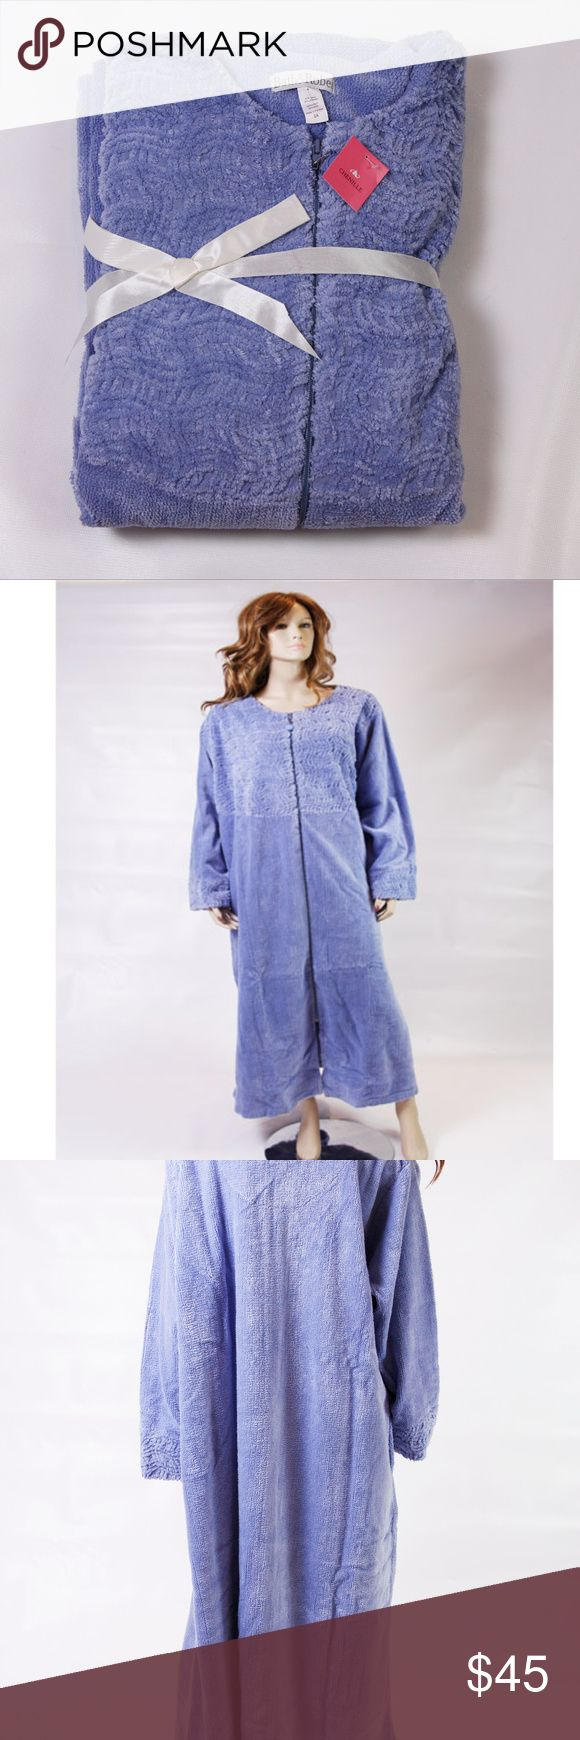 NWT BATH & ROBE CHENILLE ROBE SIZE 2 X BRAND NEW WITH TAG AND ORIGINAL PACKAGING!   THIS IS A CHENILLE COTTON ZIPPER FRONT SKY BLUE ROBE    FULL LENGTH 2 X   BEAUTIFUL ROBE THAT IS VERY SOFT,   WAS REMOVED FROM PLASTIC BAG TO BE PHOTOGRAPHED.    SMOKE-FREE-HOME Bath & Robe Intimates & Sleepwear Robes